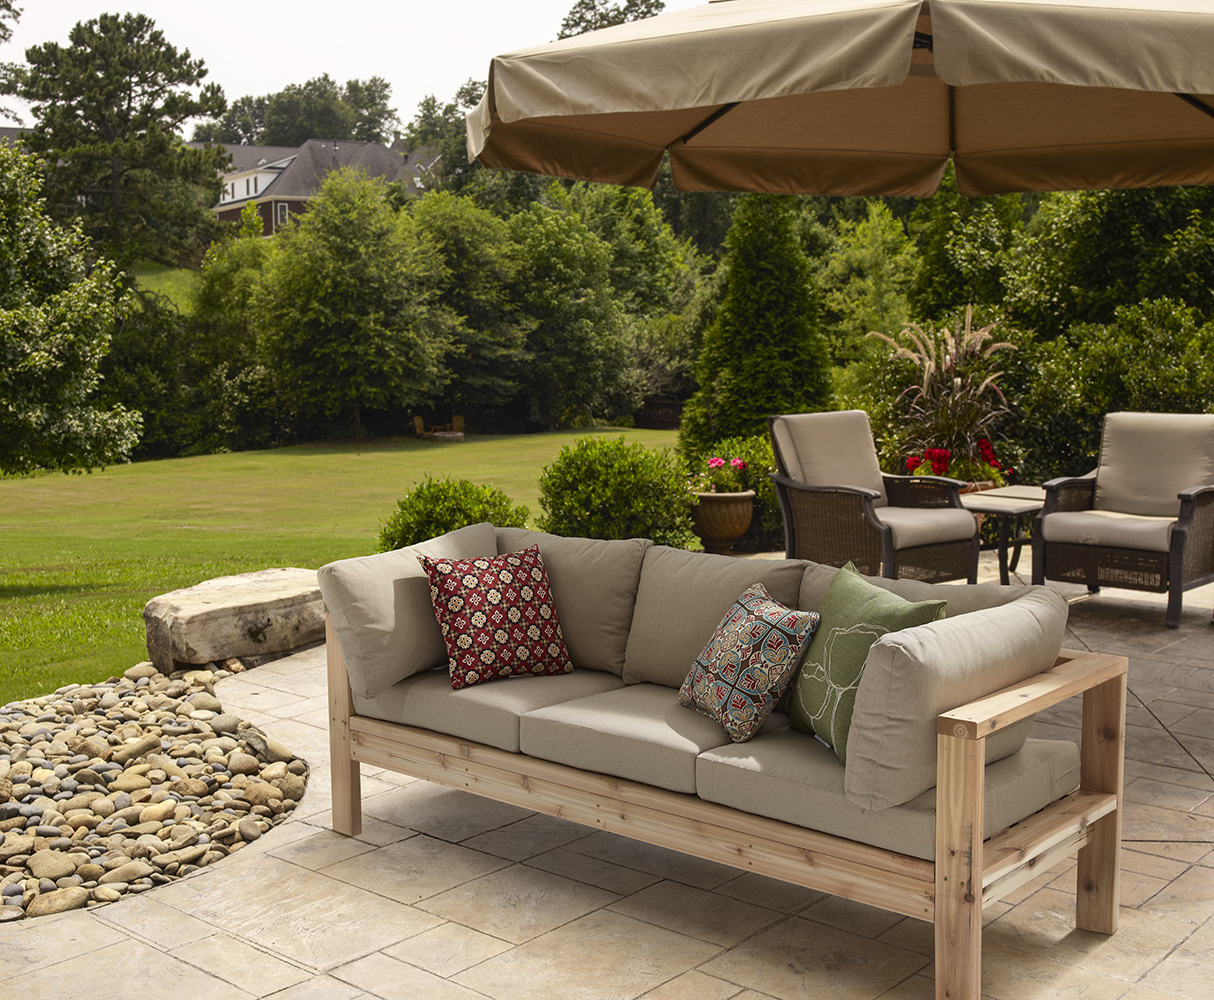 outdoor couch - ryobi nation projects OIRKXEJ